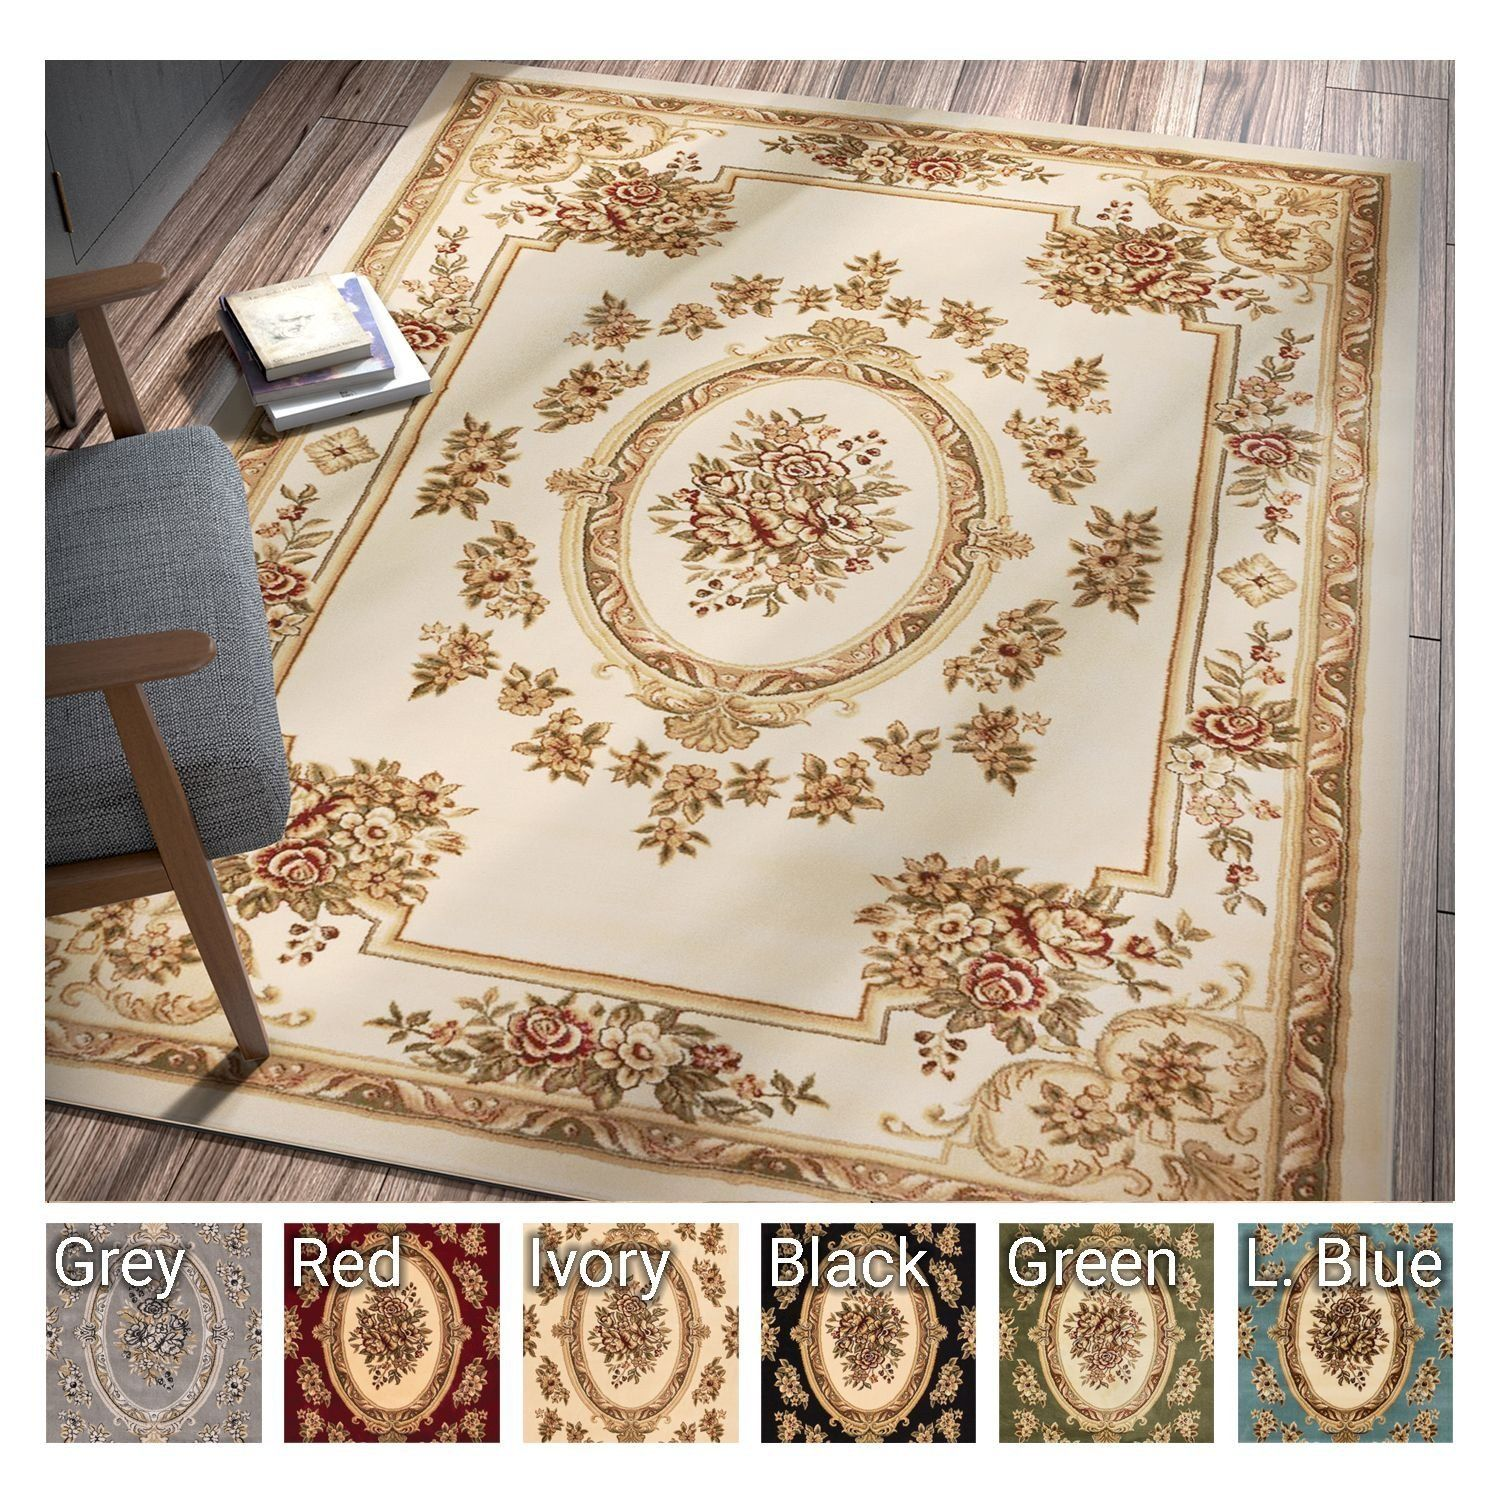 Room Pastoral Medallion Ivory French European Formal Traditional 8x11 8x10